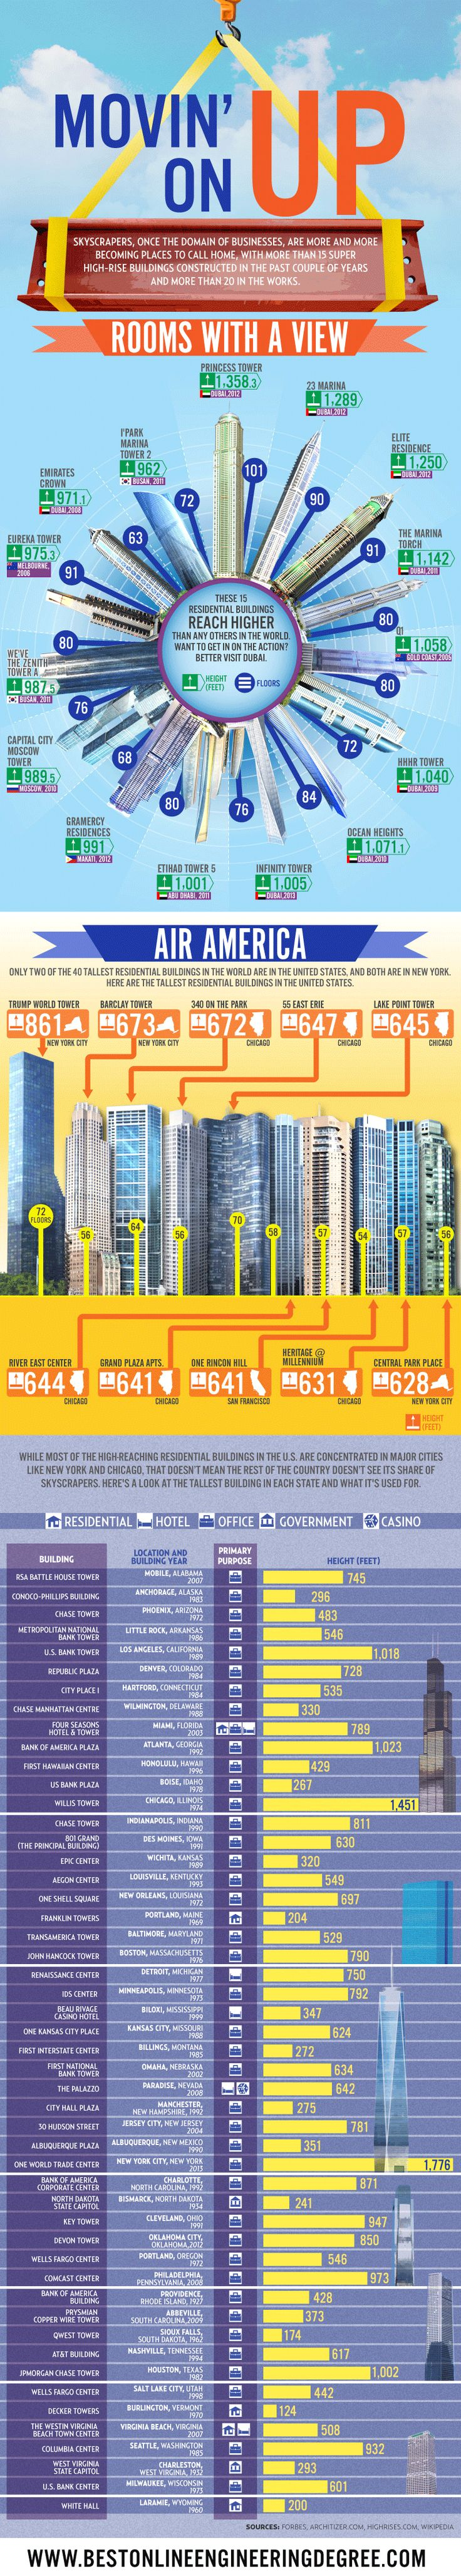 Aria Cahill from Best Online Engineering Degrees created this amazing infographic, answering the question: What is going on with skyscrapers around the world? Take a look at this story about world's tallest buildings and let us know what do you think.